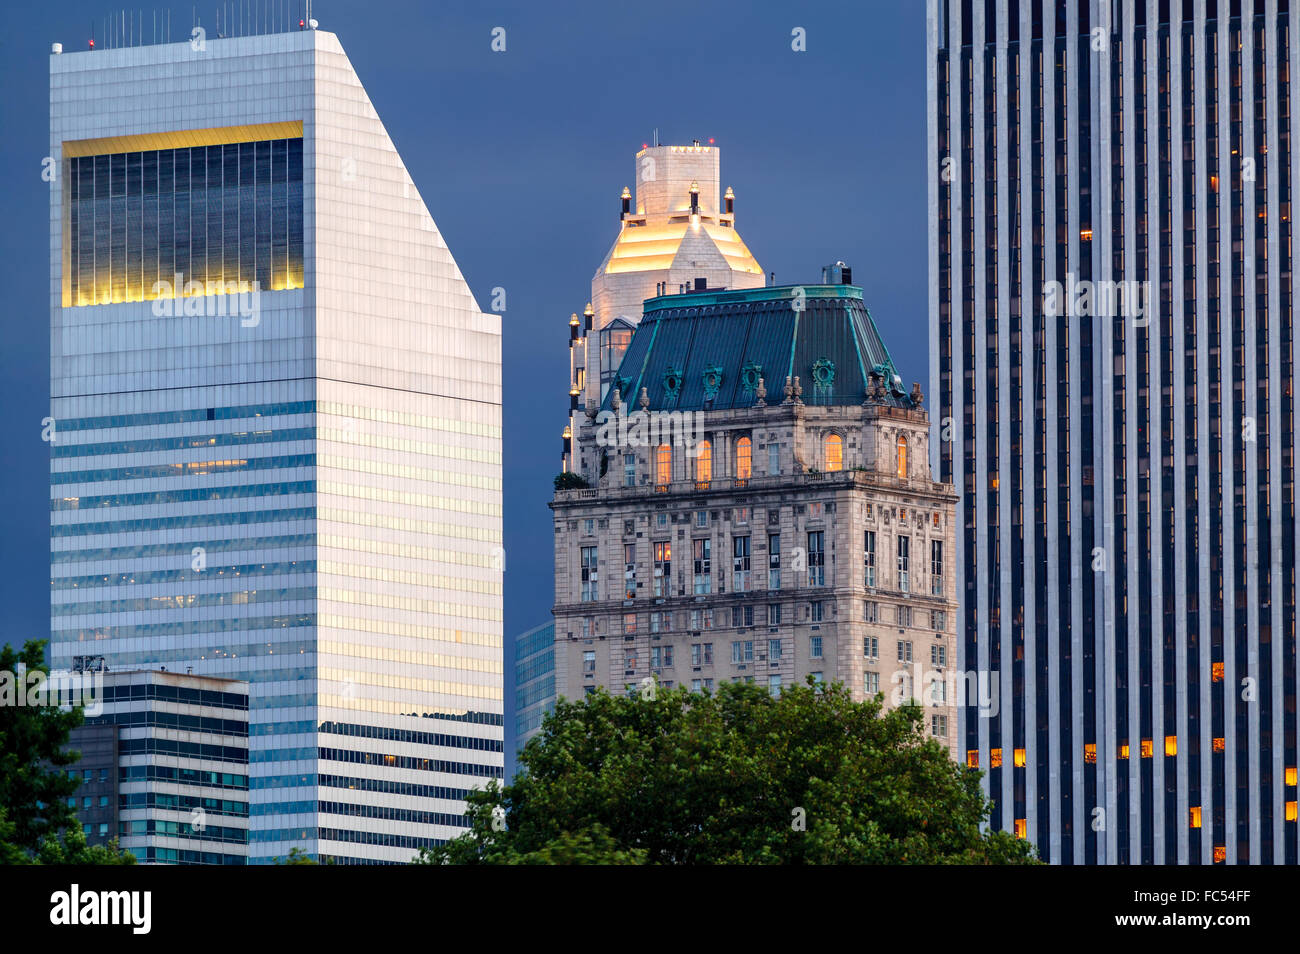 manhattan architectural contrasts urban view of new york diverse